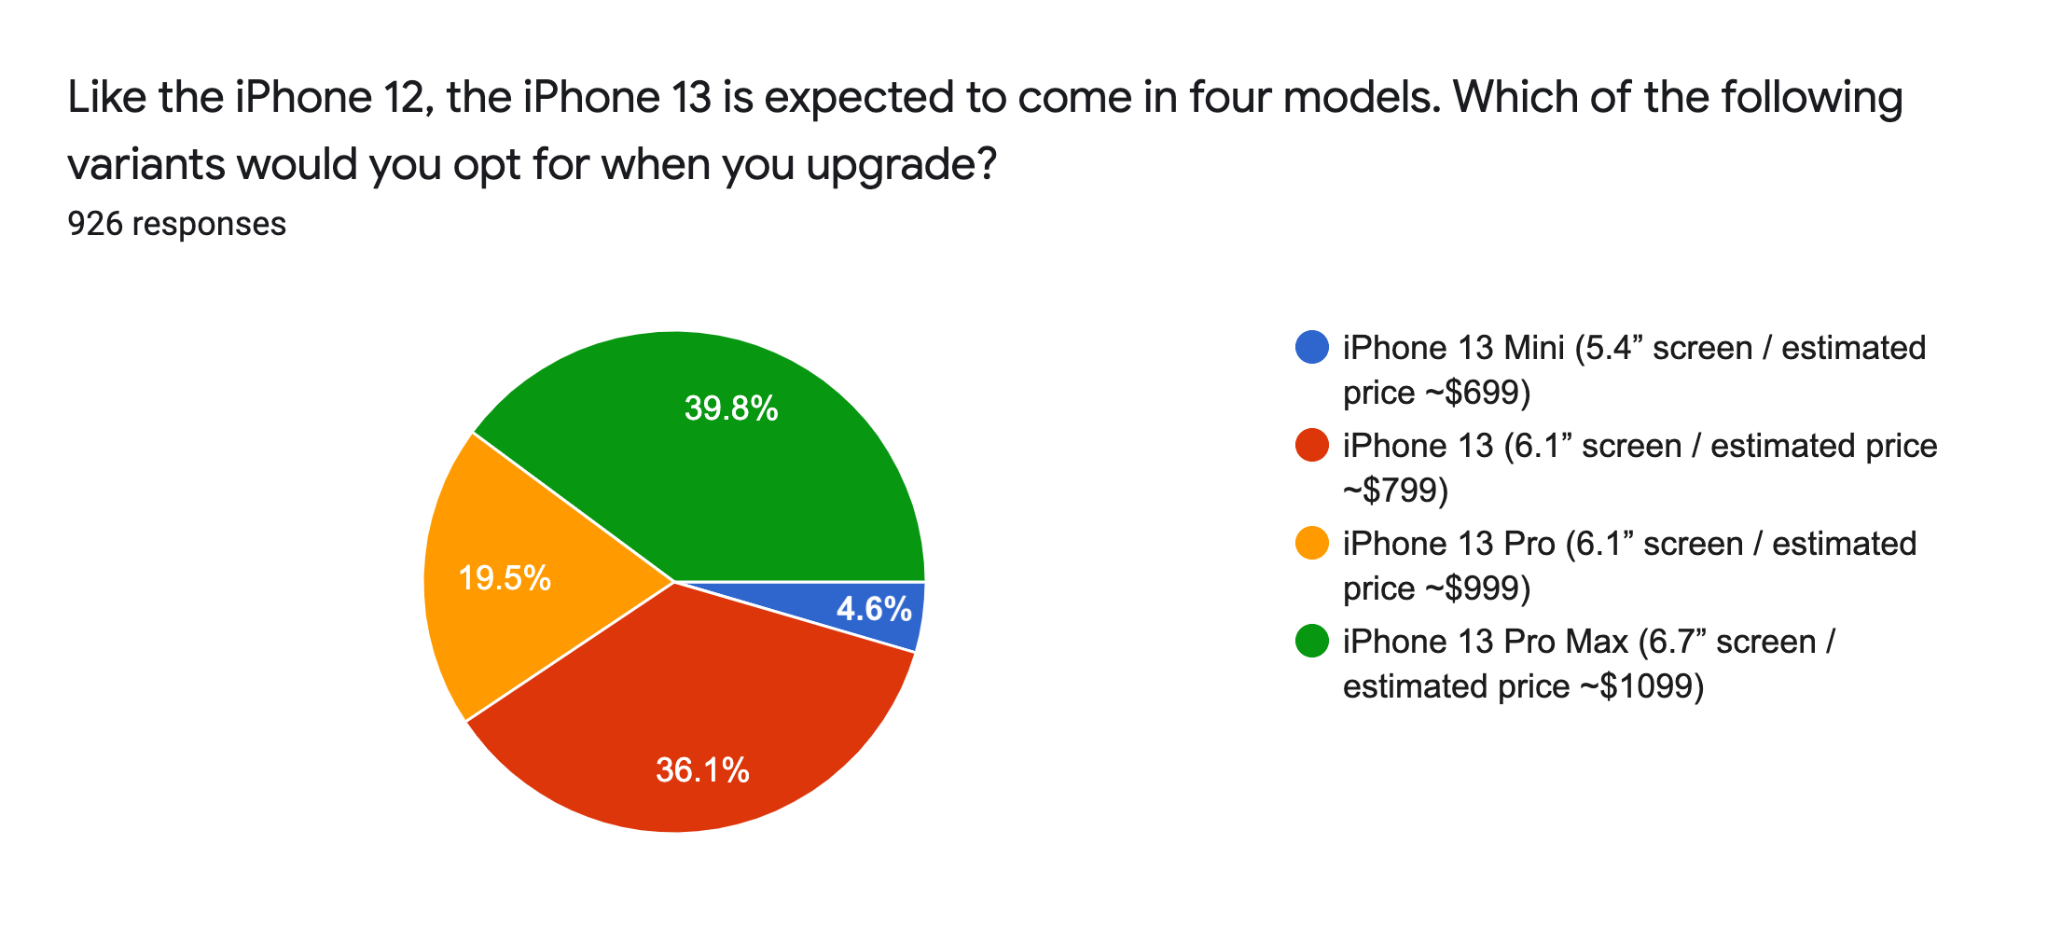 Which iPhone 13 model would you opt for?